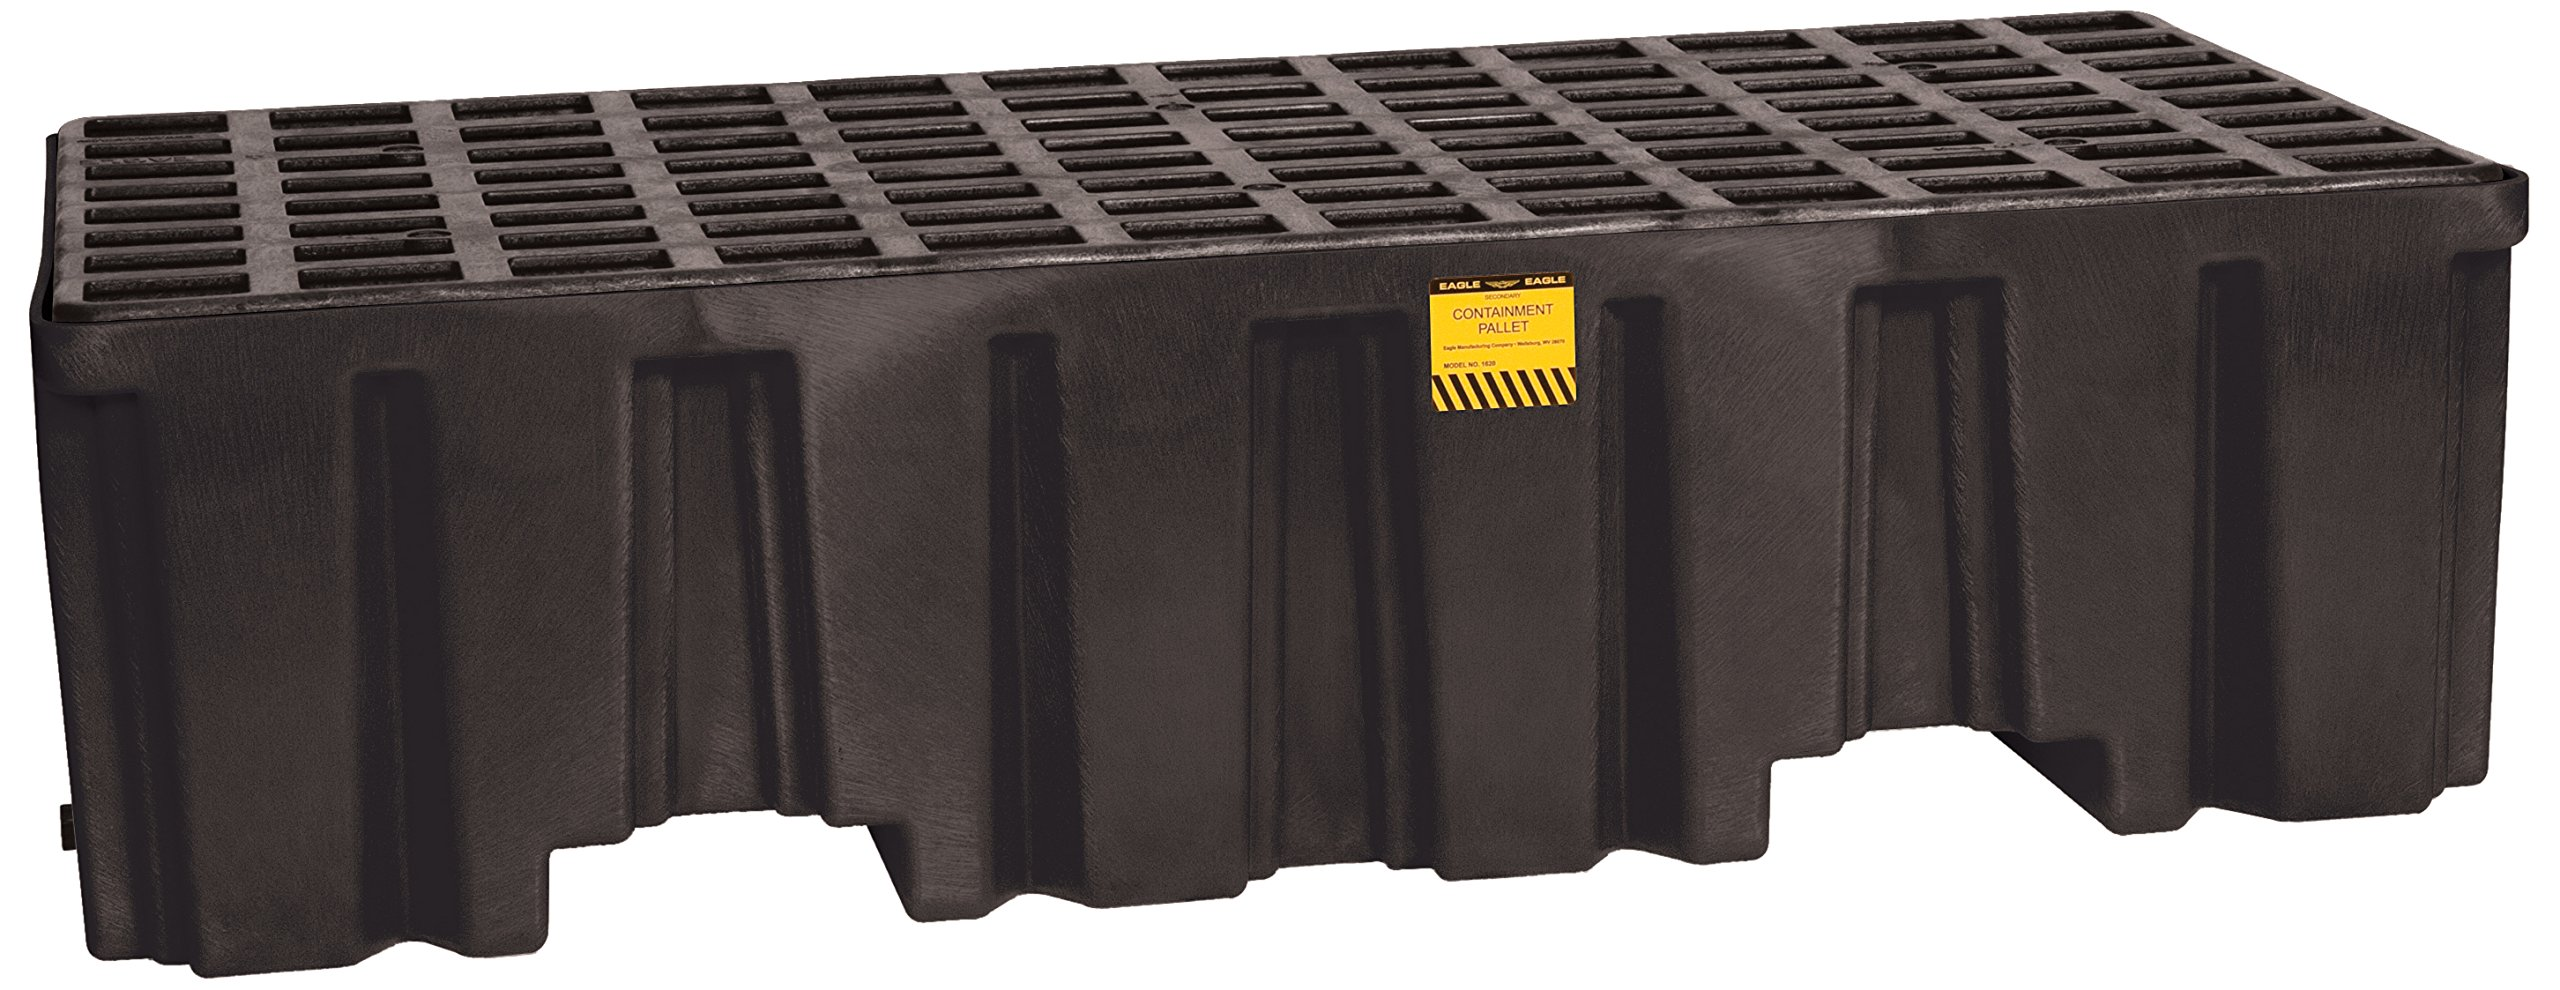 Eagle 1620B Black 2 Drum Containment Pallet with Drain